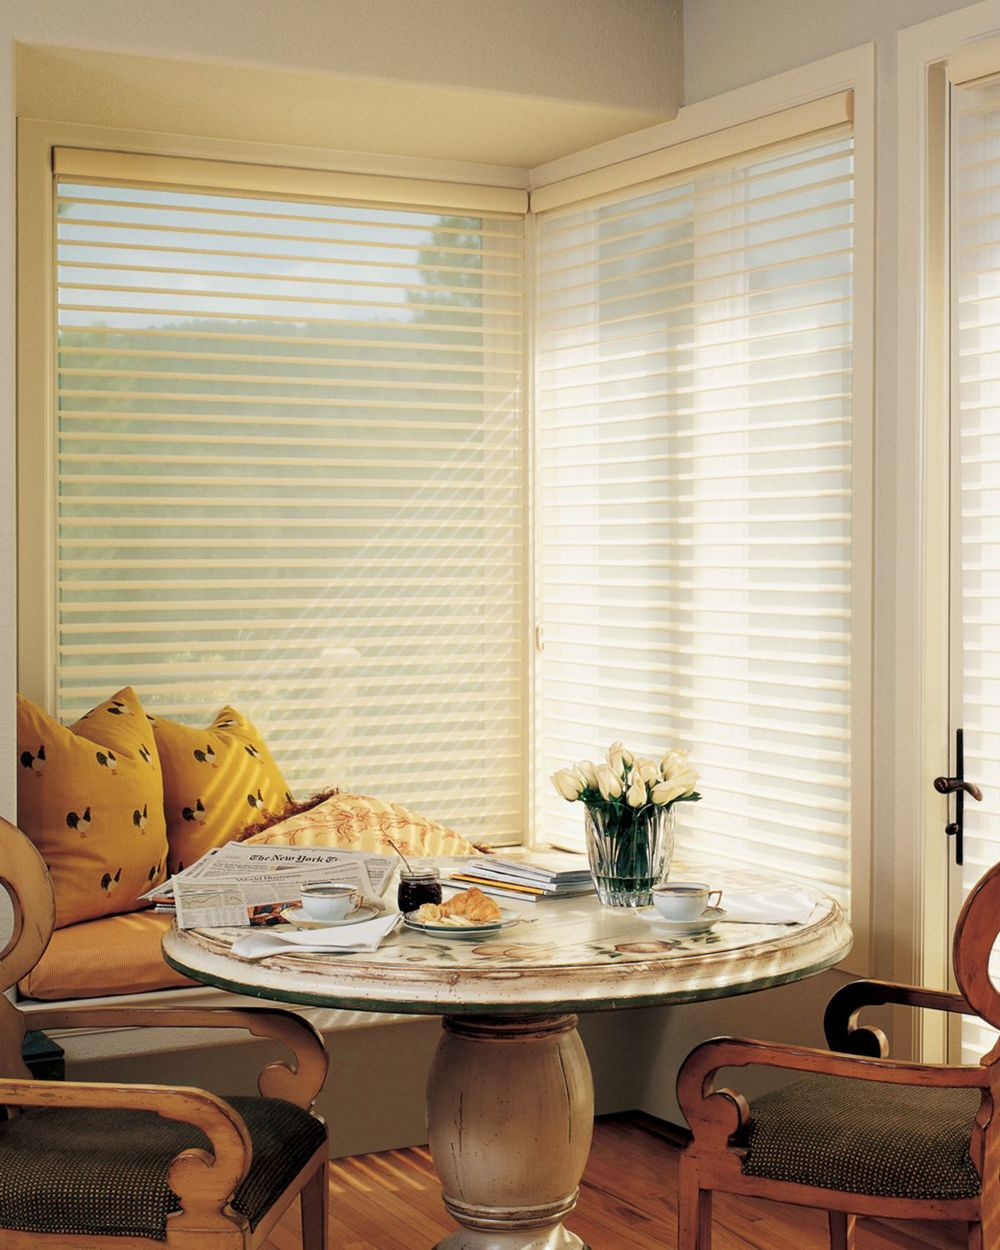 <p><strong></strong>Nantucket Shadings